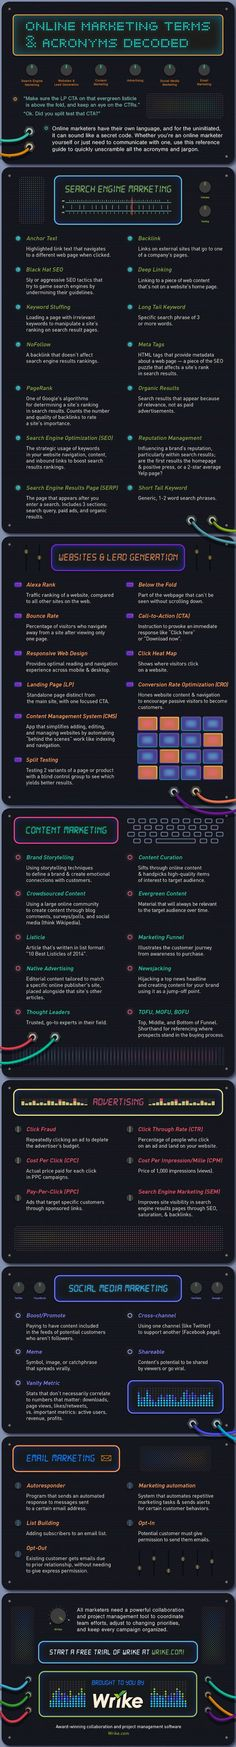 Email, SEO, Content Marketing, Advertising, Social Media: A-Z Glossary of Online Marketing Terms - #Infographic